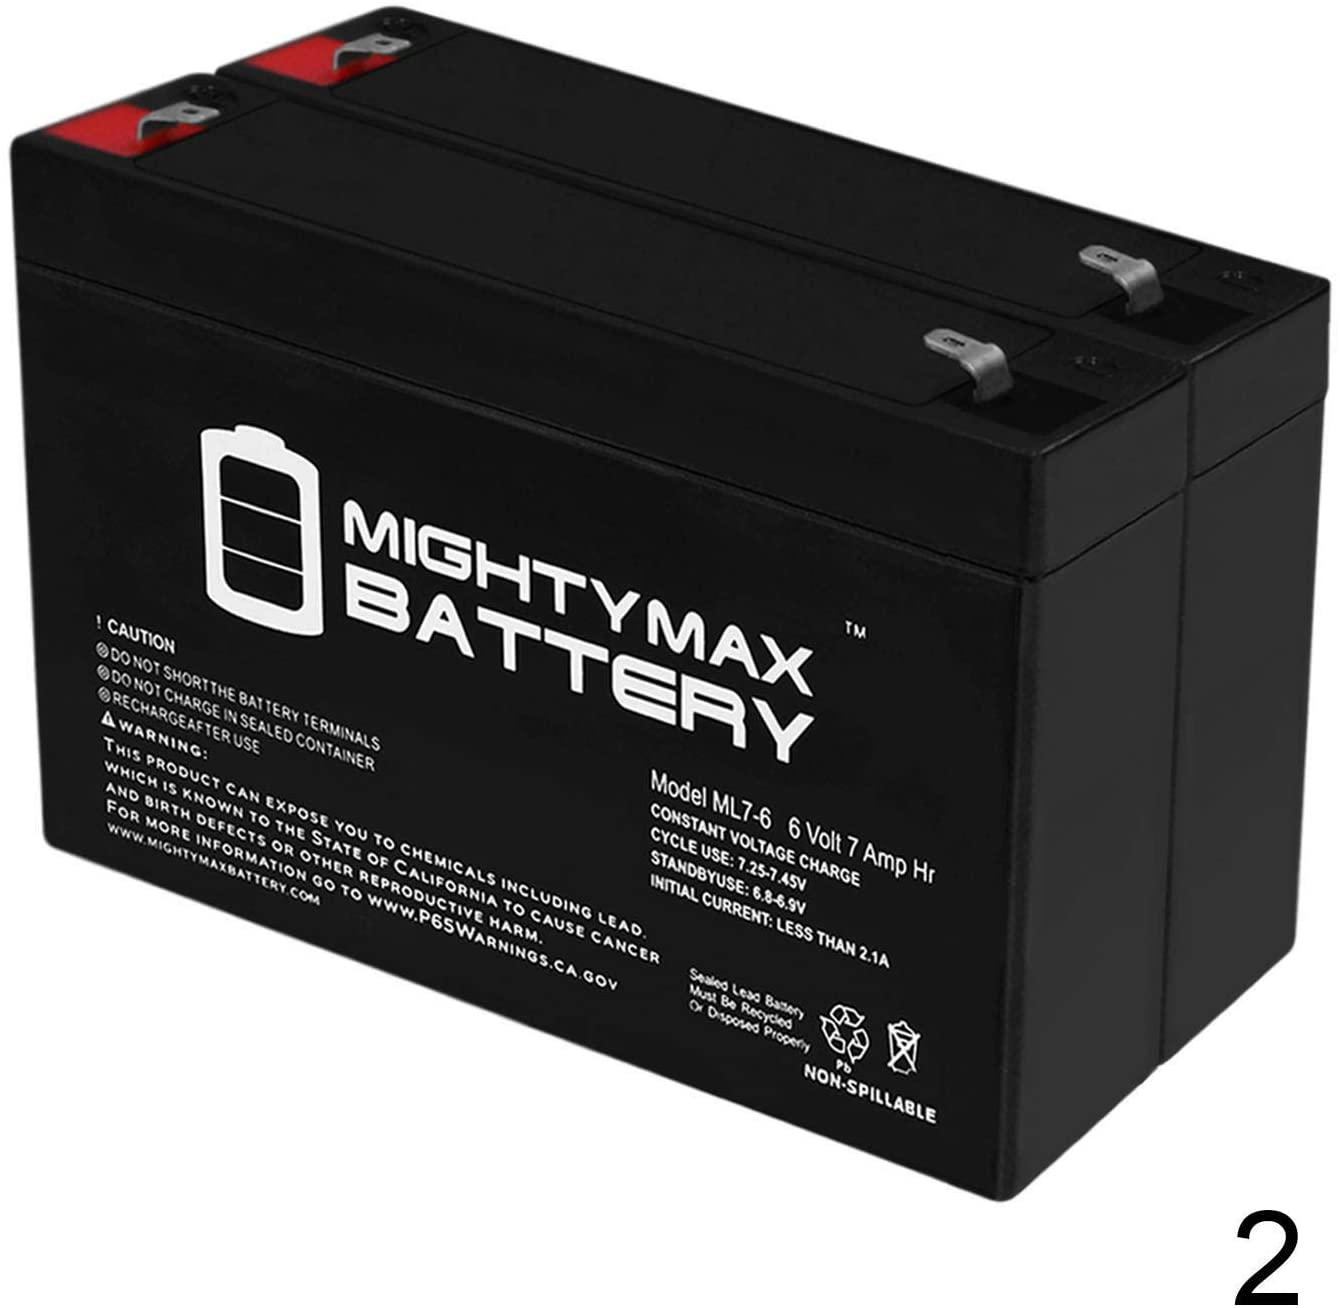 Mighty Max Battery 6V 7AH Sealed Lead Acid (SLA) Battery for Emergency Exit Lighting AGM - 2 Pack Brand Product